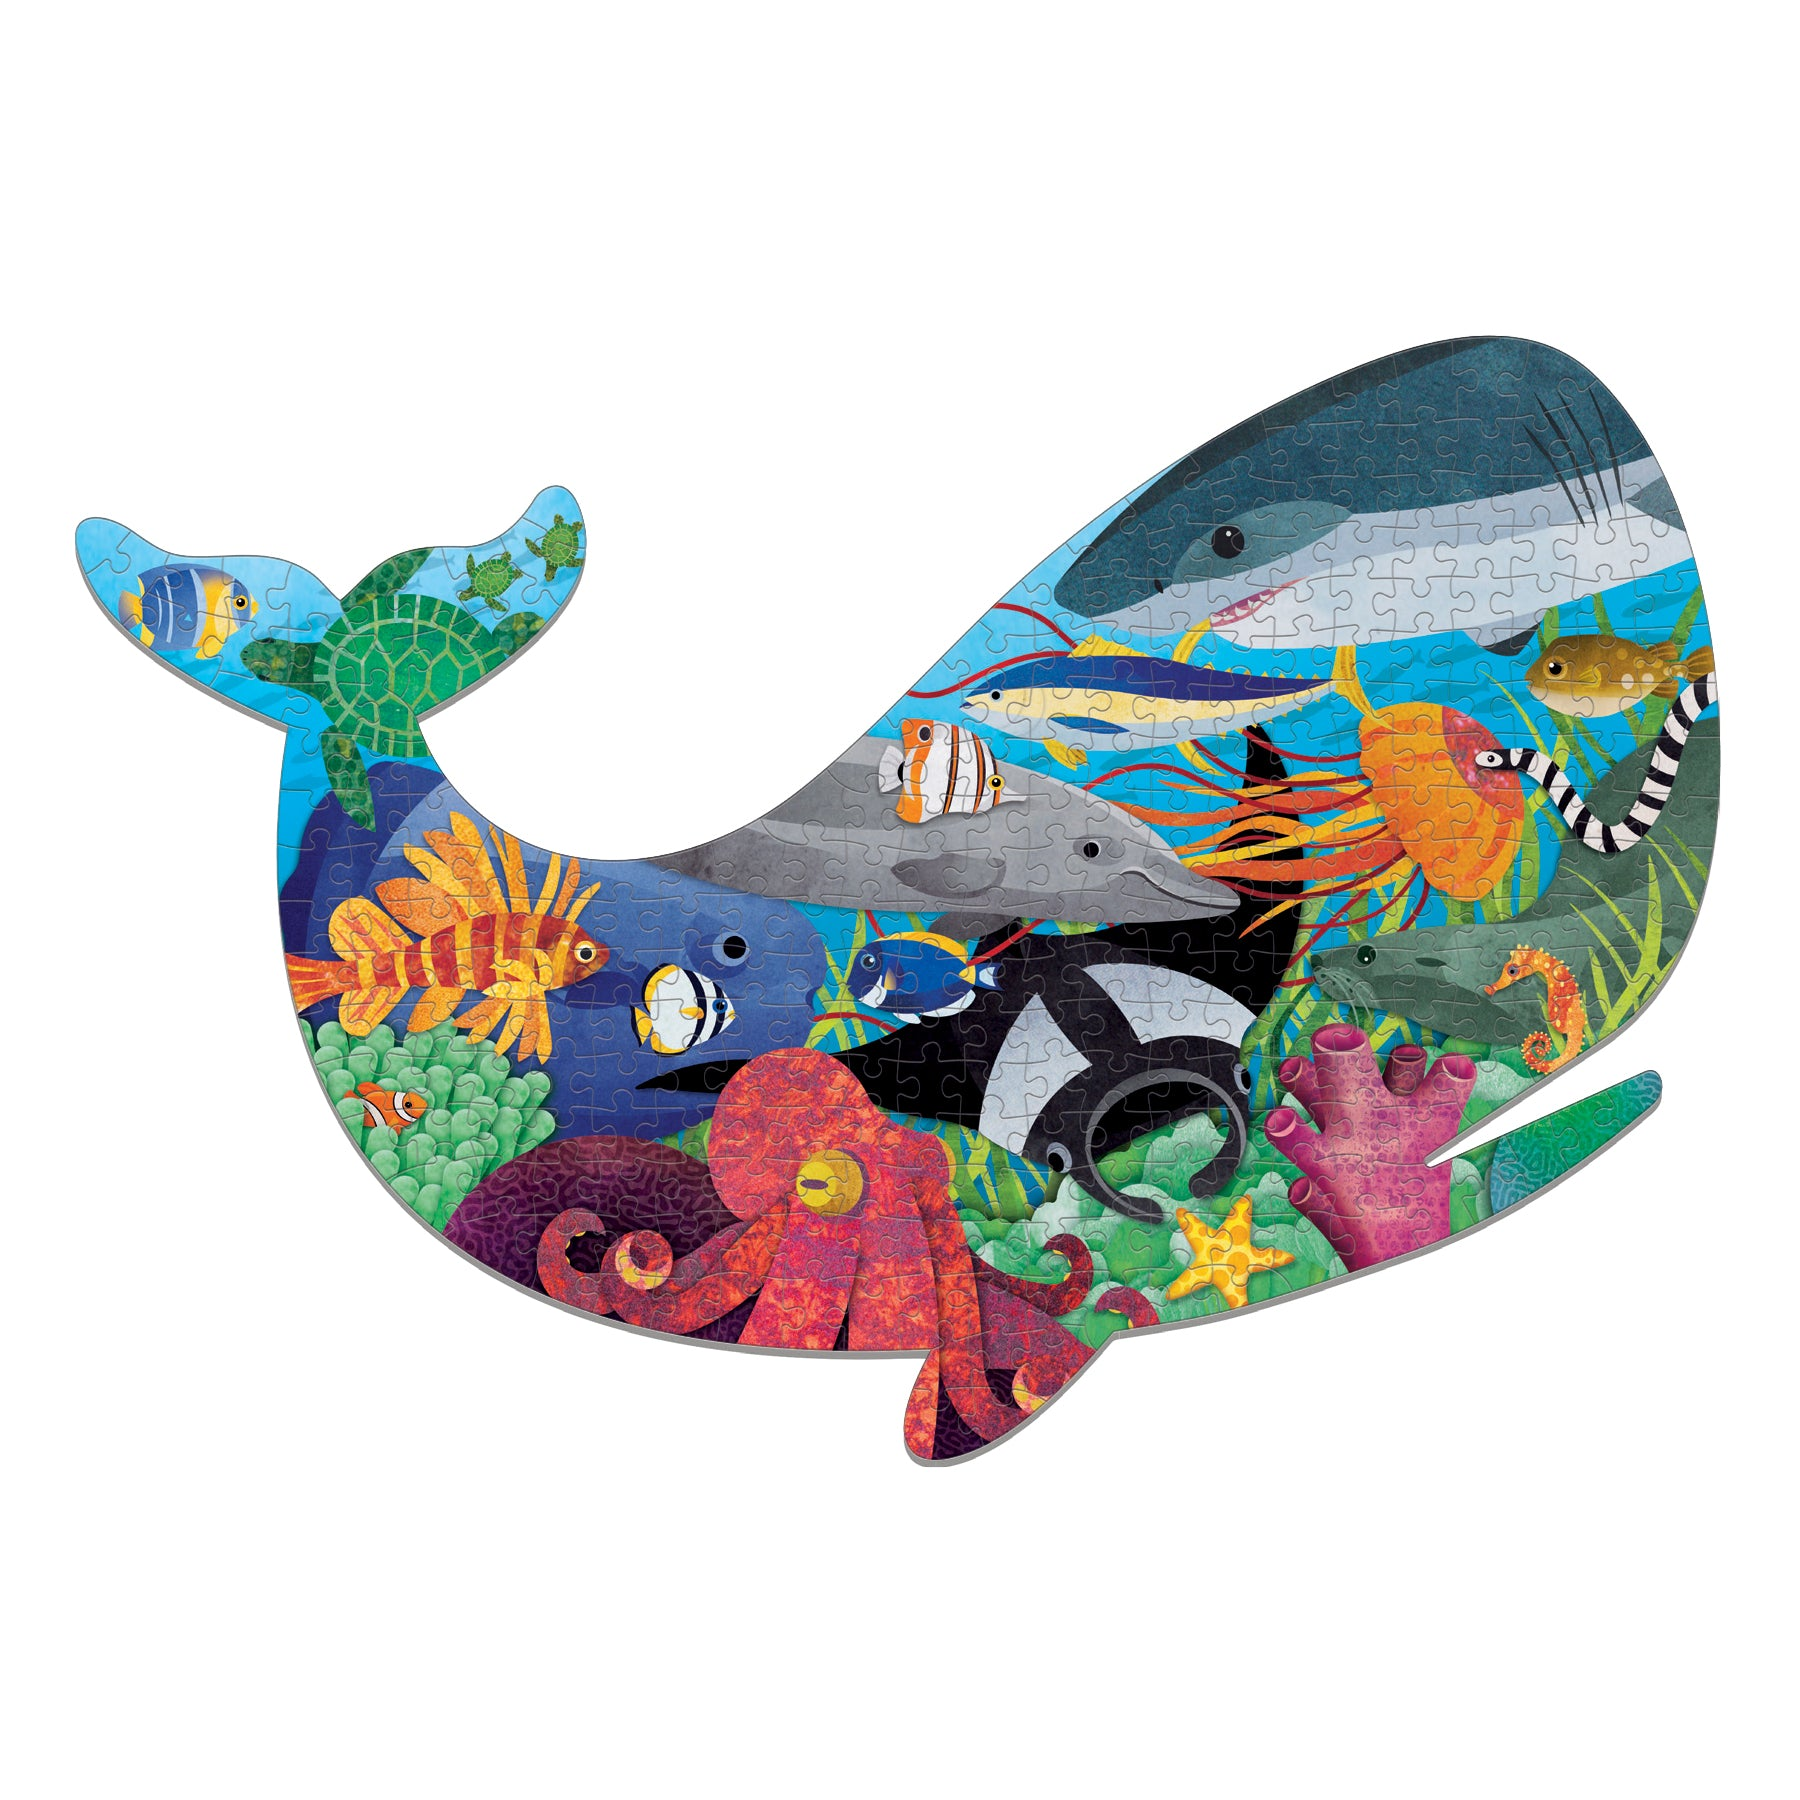 ocean life shaped puzzle - 300 piece